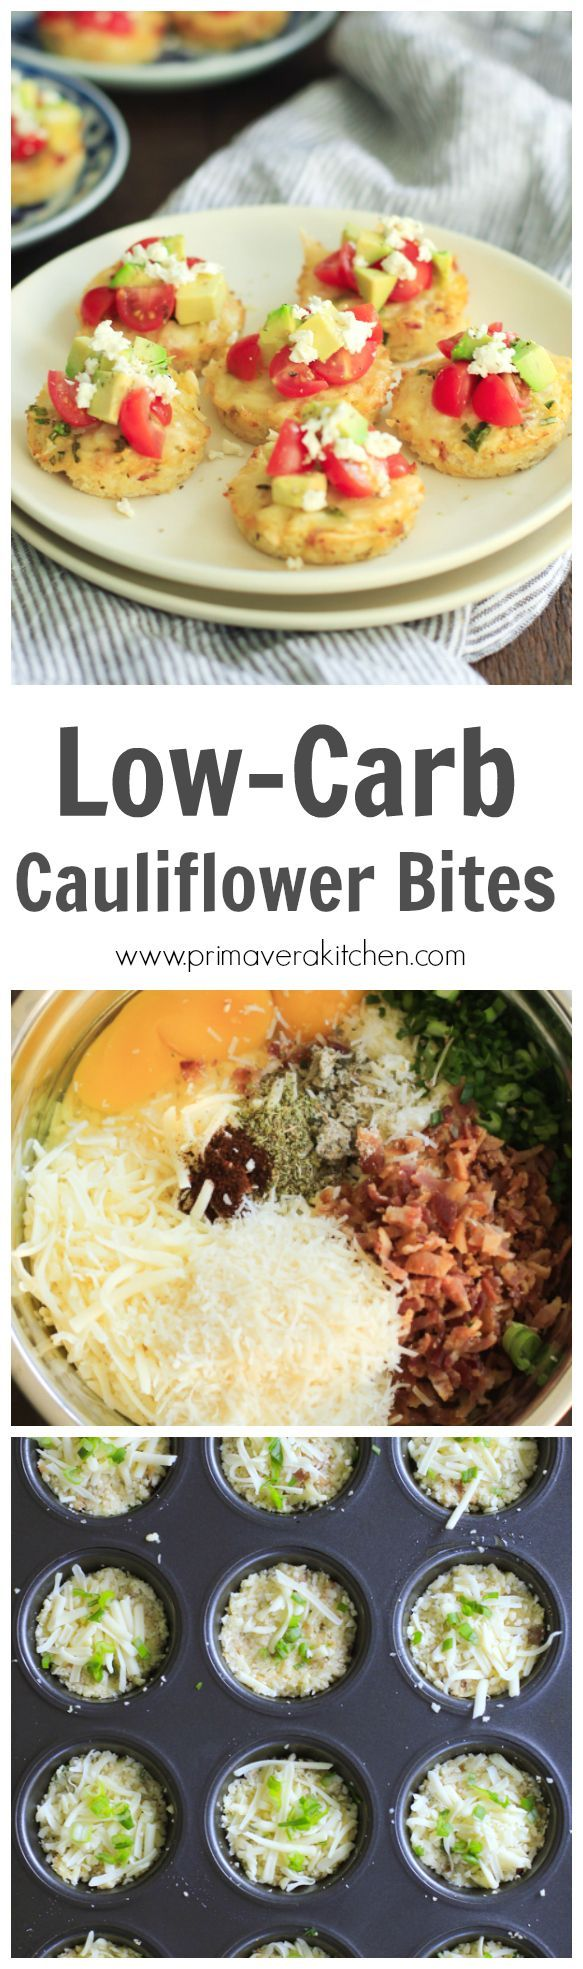 low-carb-cauliflower-bites-Looking for a gluten-free and low-carb snack, side dish or appetizer? What about this ultra-flavorful Low-Carb Cauliflower Bites made without flour.